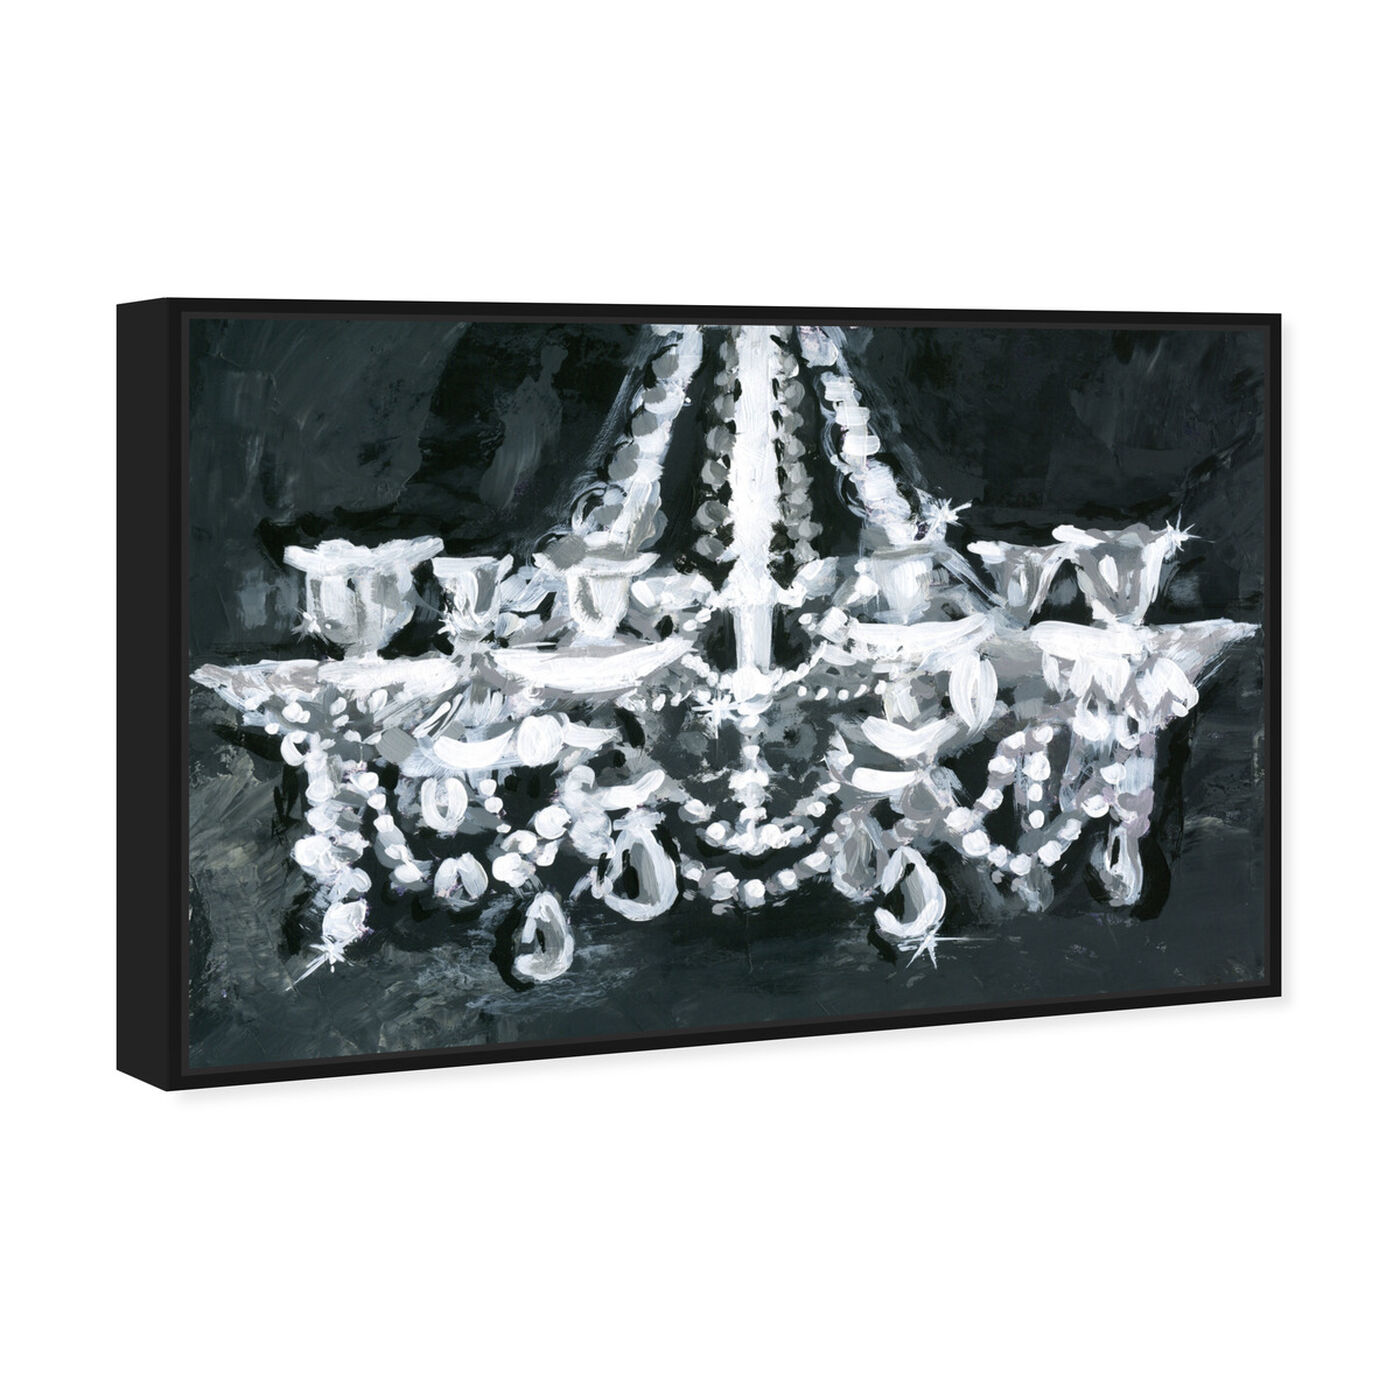 Angled view of BW Candelabro featuring fashion and glam and chandeliers art.